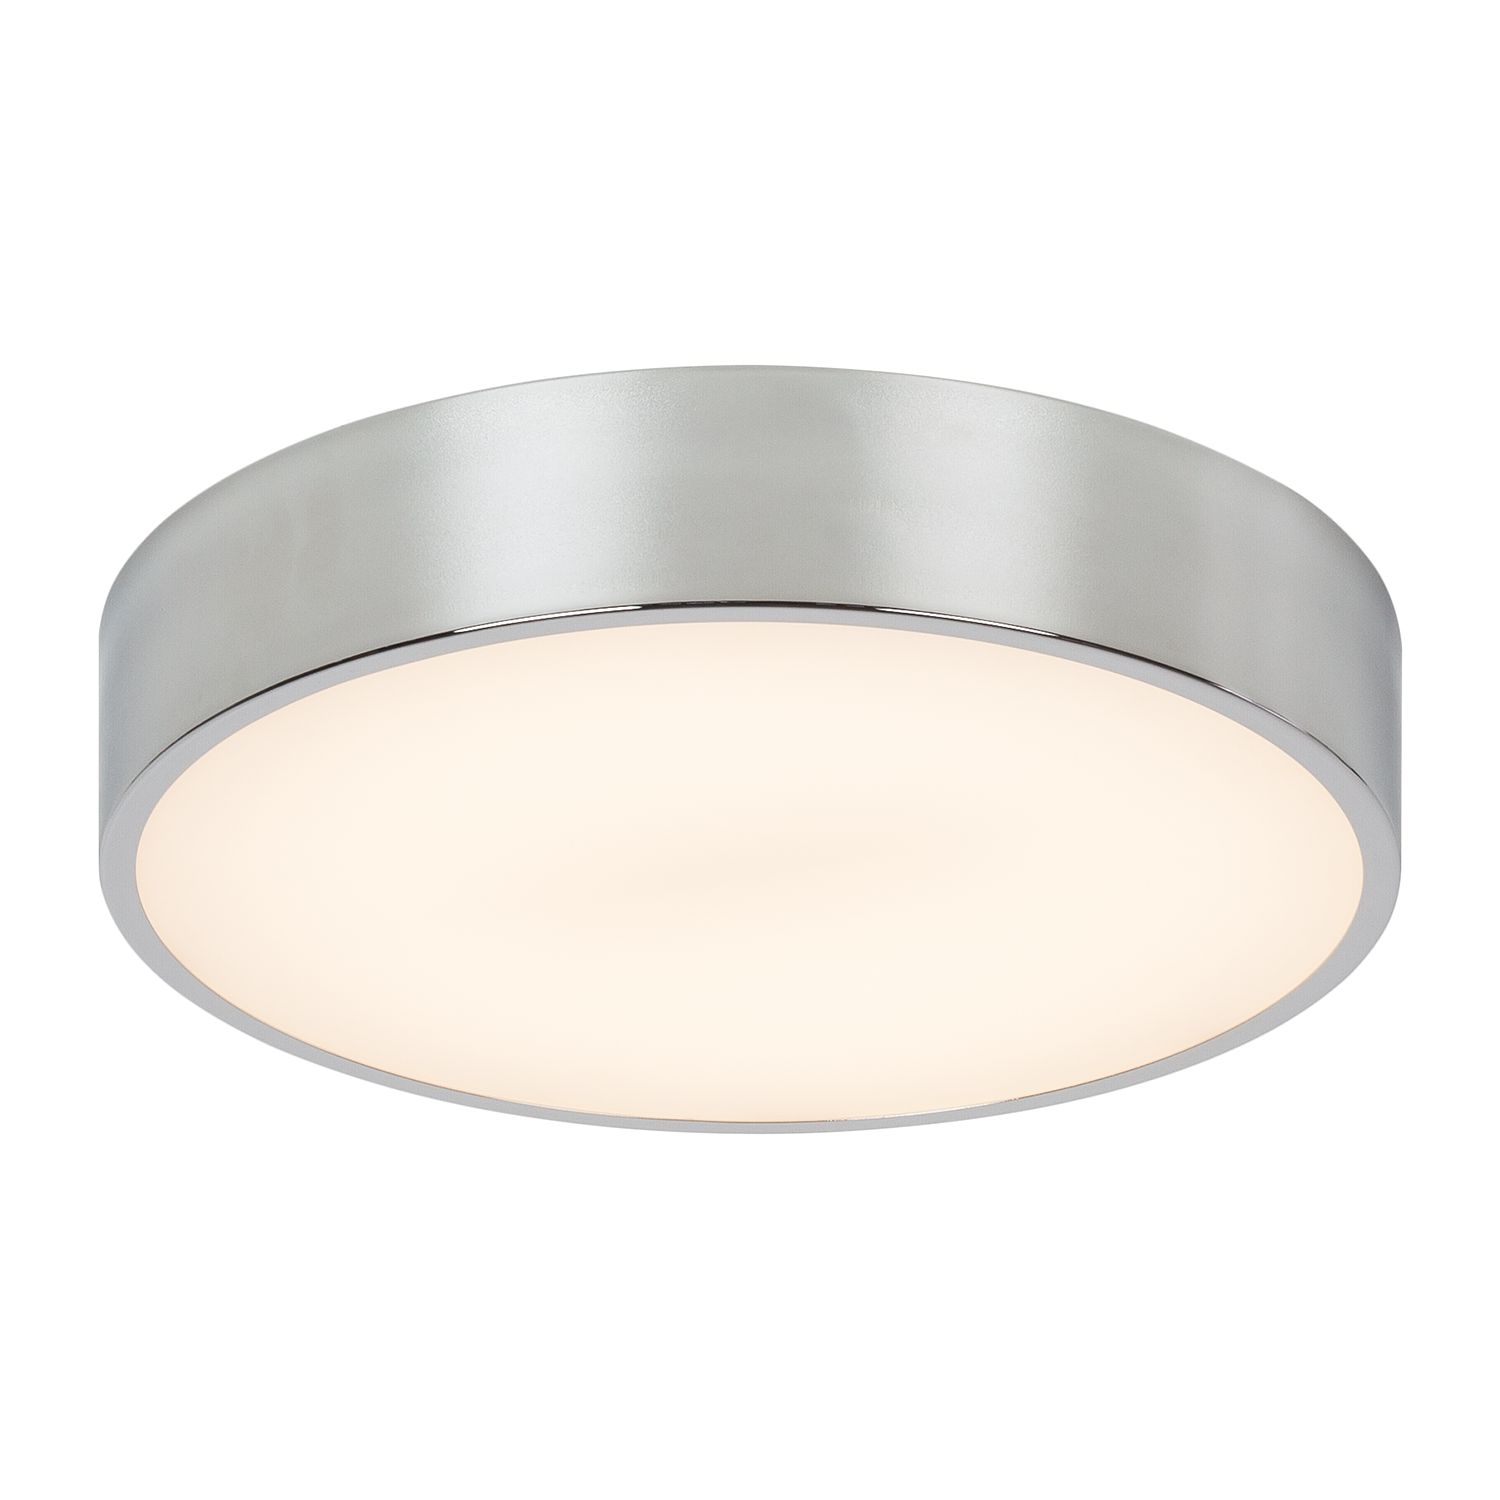 LED-Deckenleuchte Smart by Micron ● Glas/Metall ● Silber- Lampadina A+